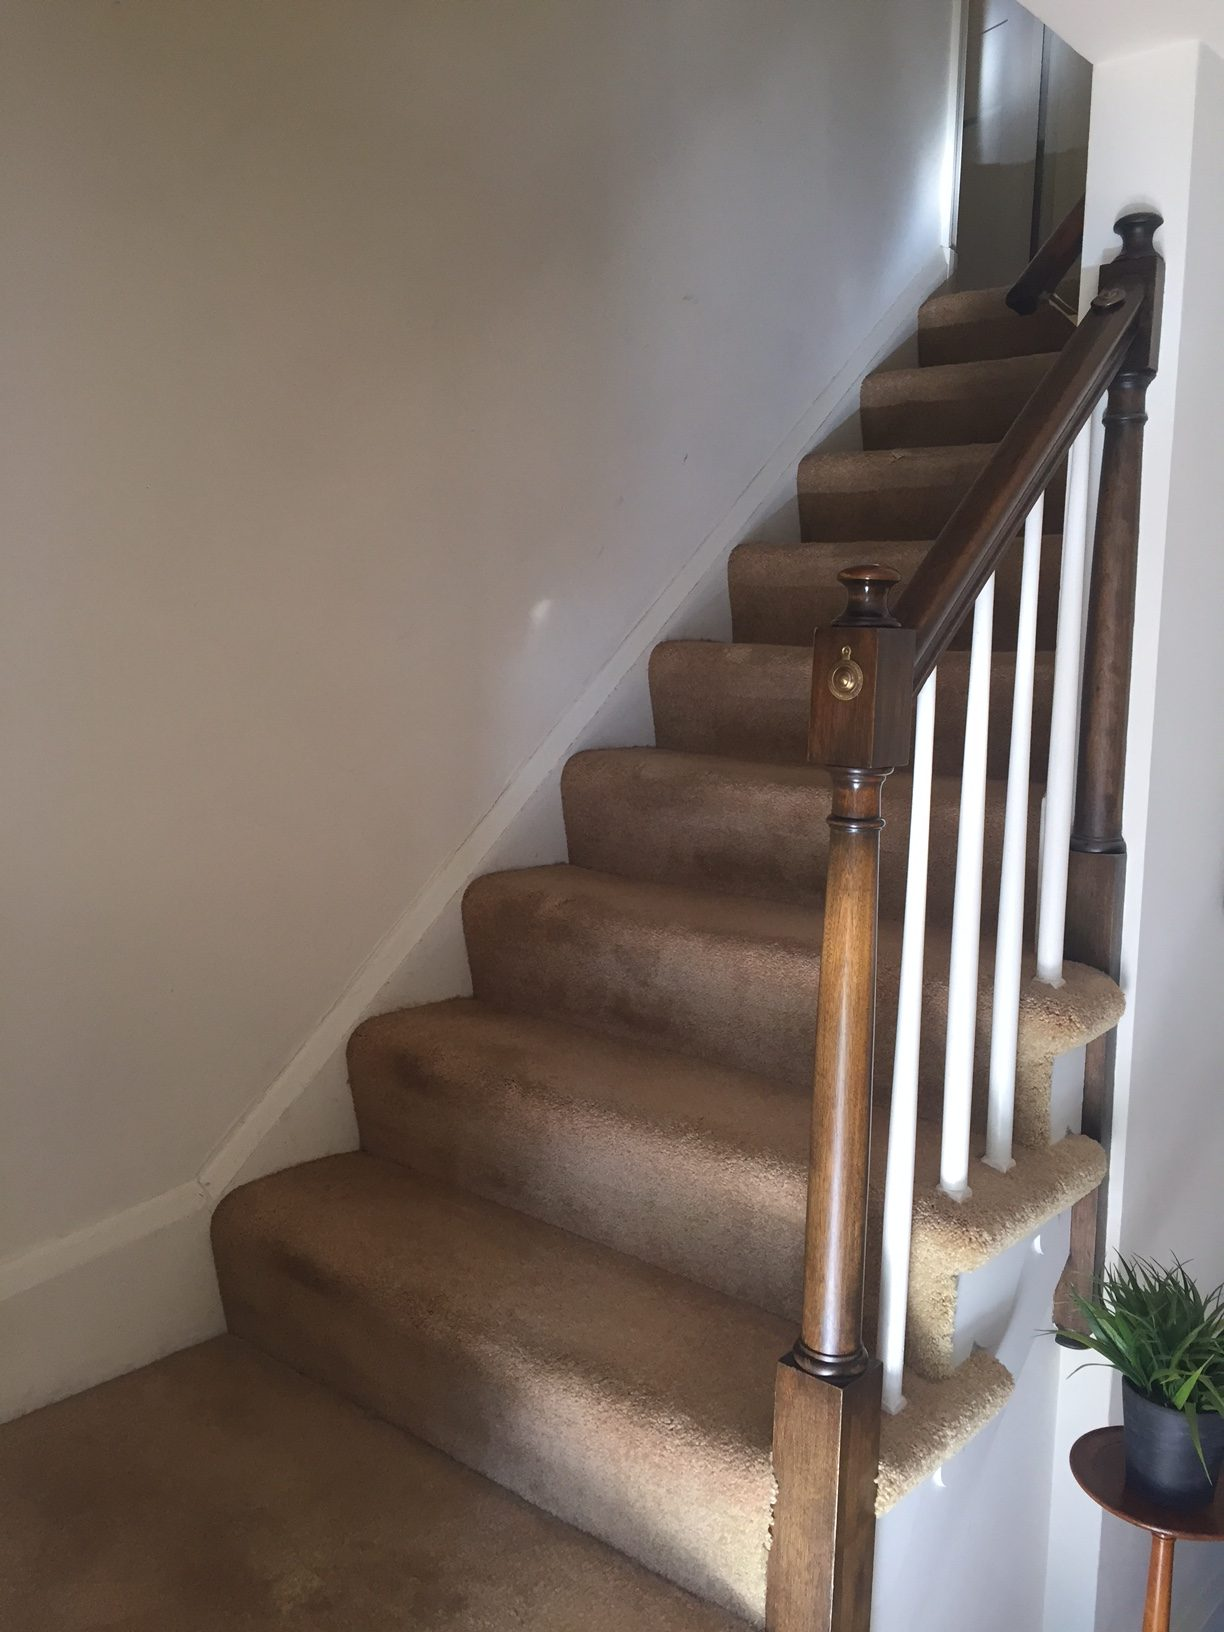 Stair Chair Lift Installed Baltimore Maryland